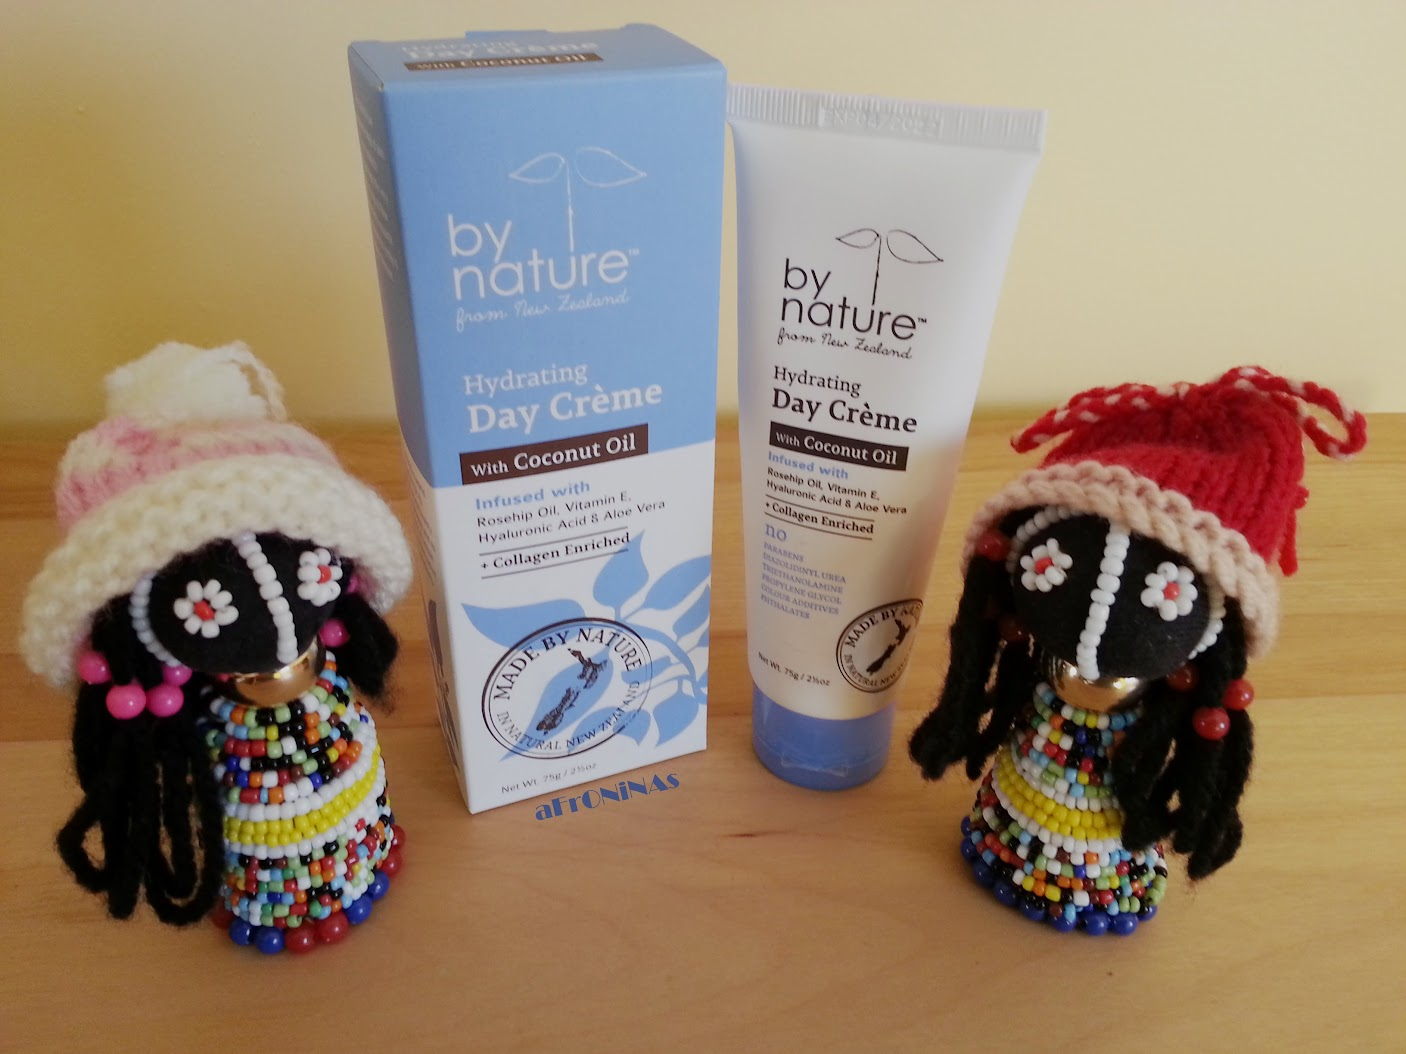 nuevos productos rutina facial, belleza facial, by nature from new zealand